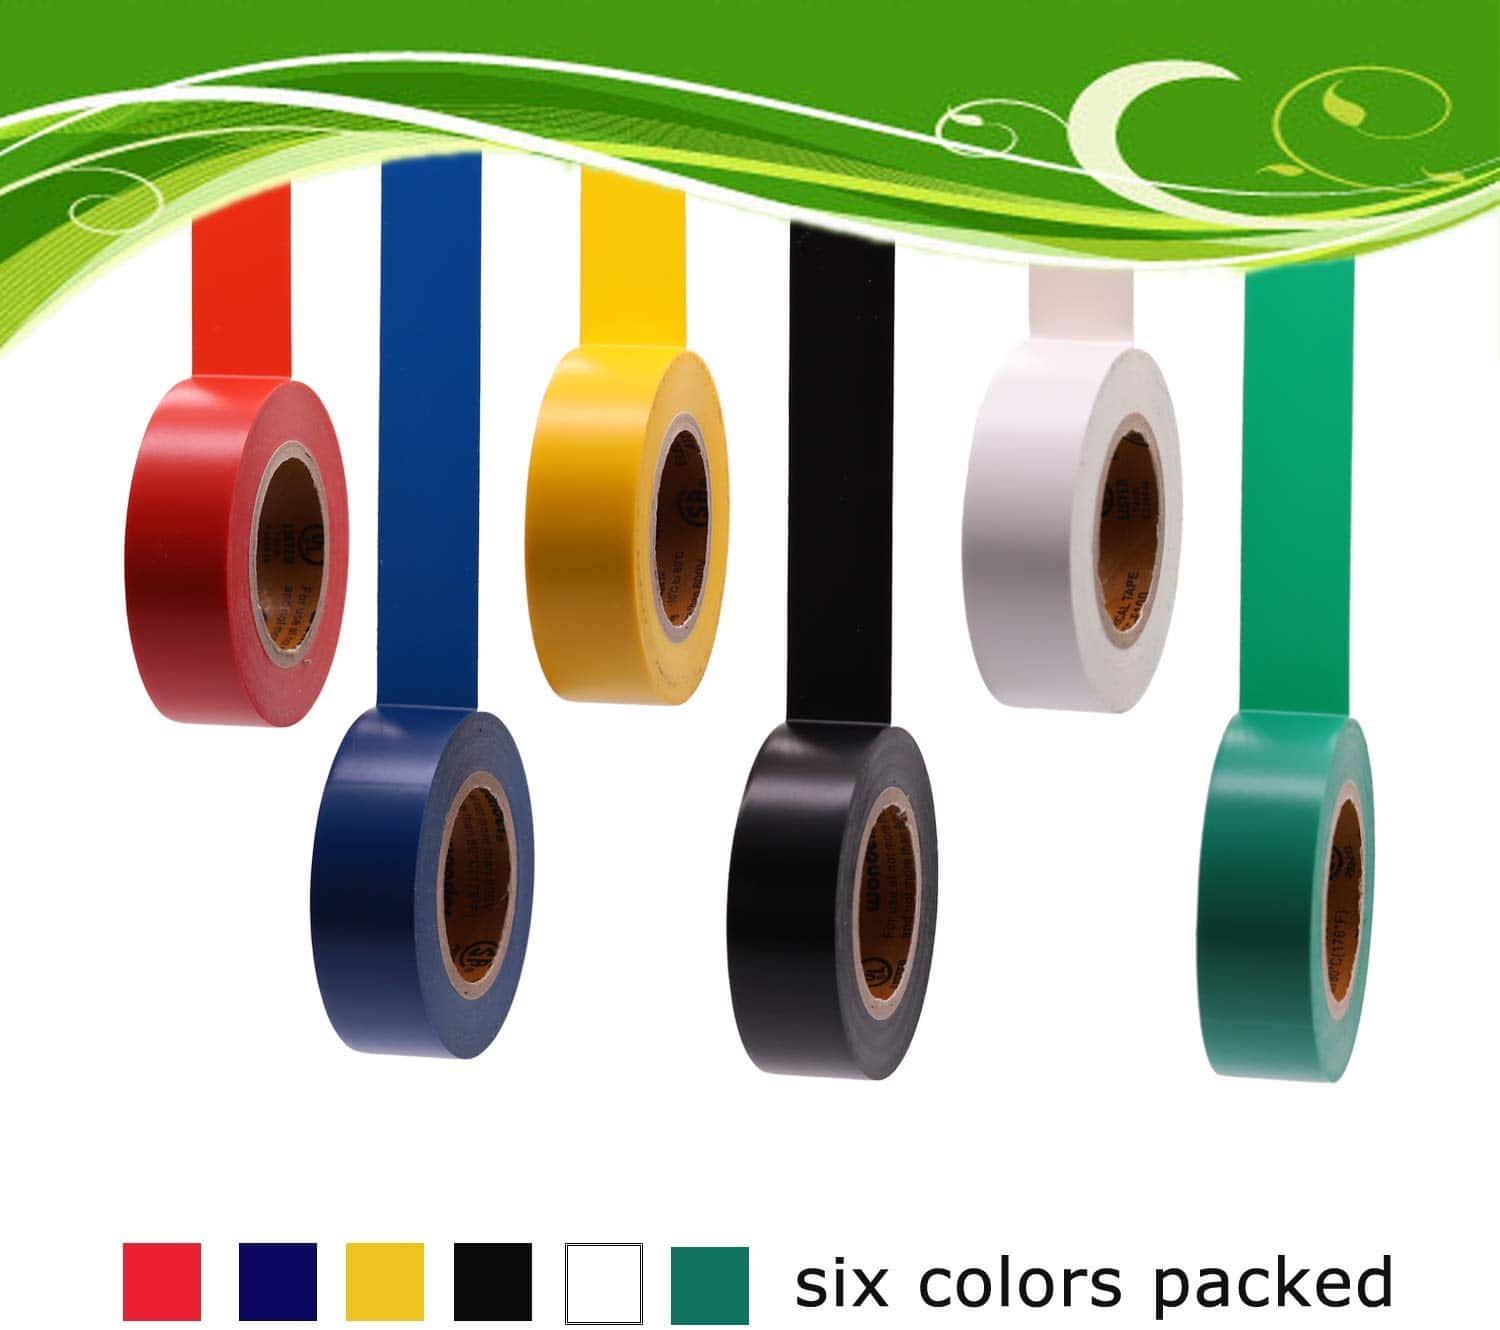 40% OFF - Electrical Tape Colors 6 Pack 3/4-Inch by 30 Feet, Voltage Level 600V Dustproof Multicolor - $5.39